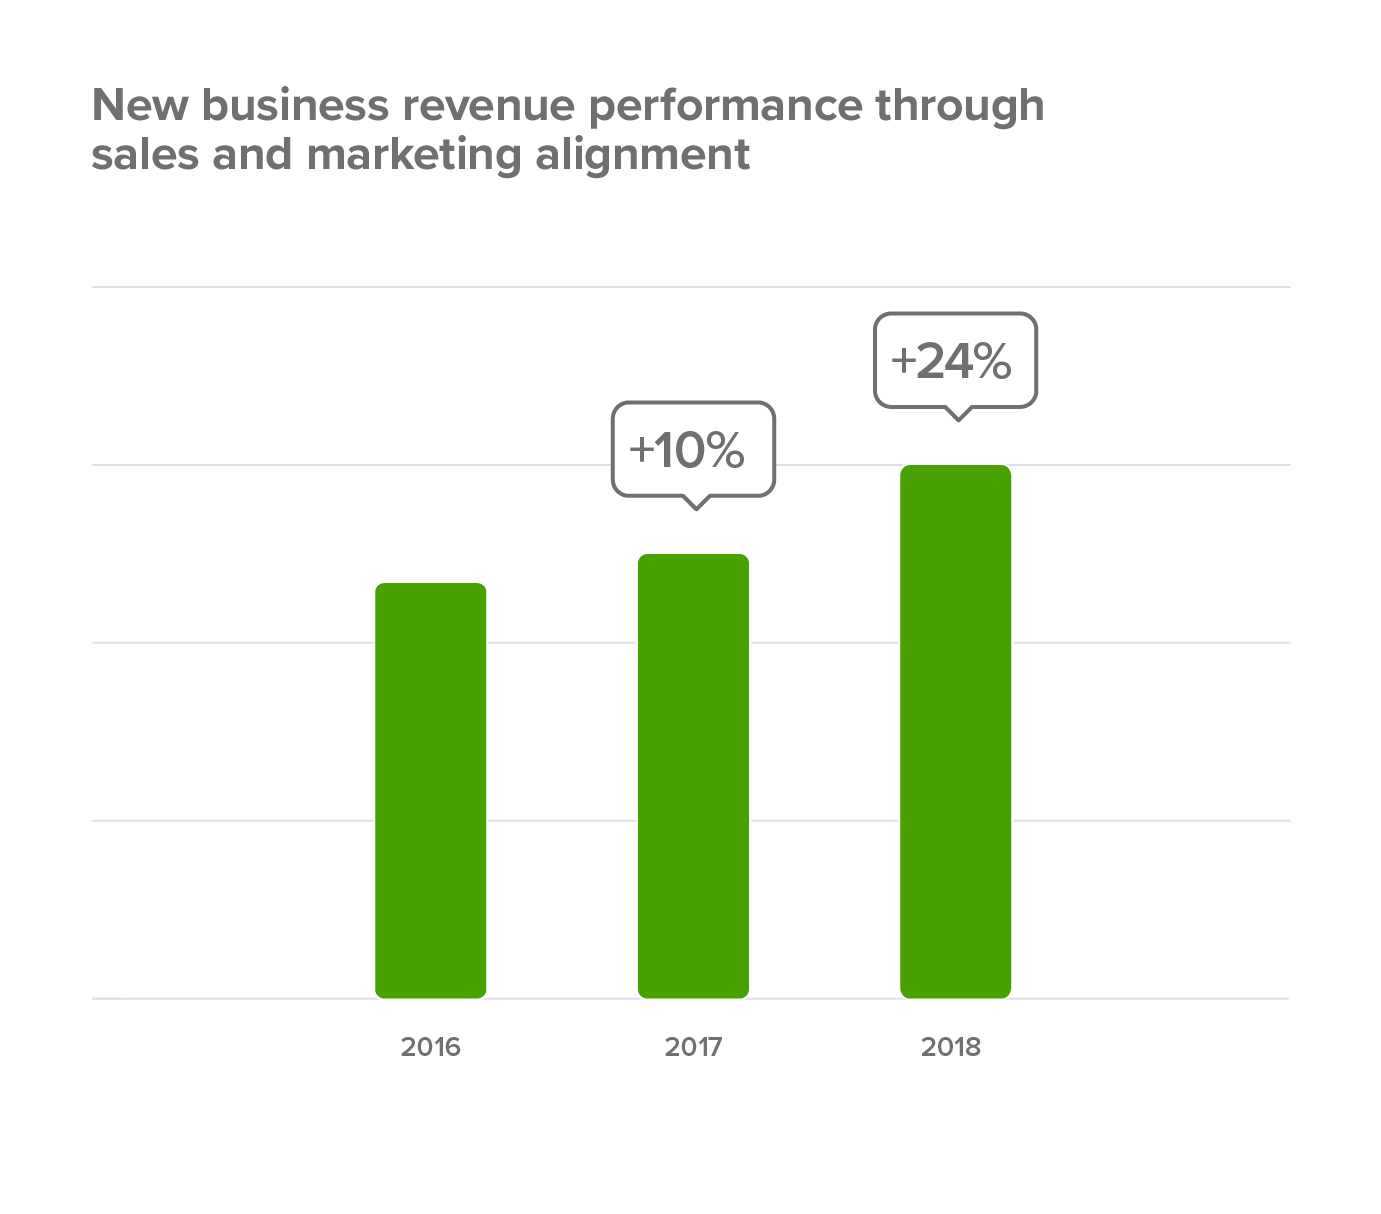 Sales performance from alignment with marketing